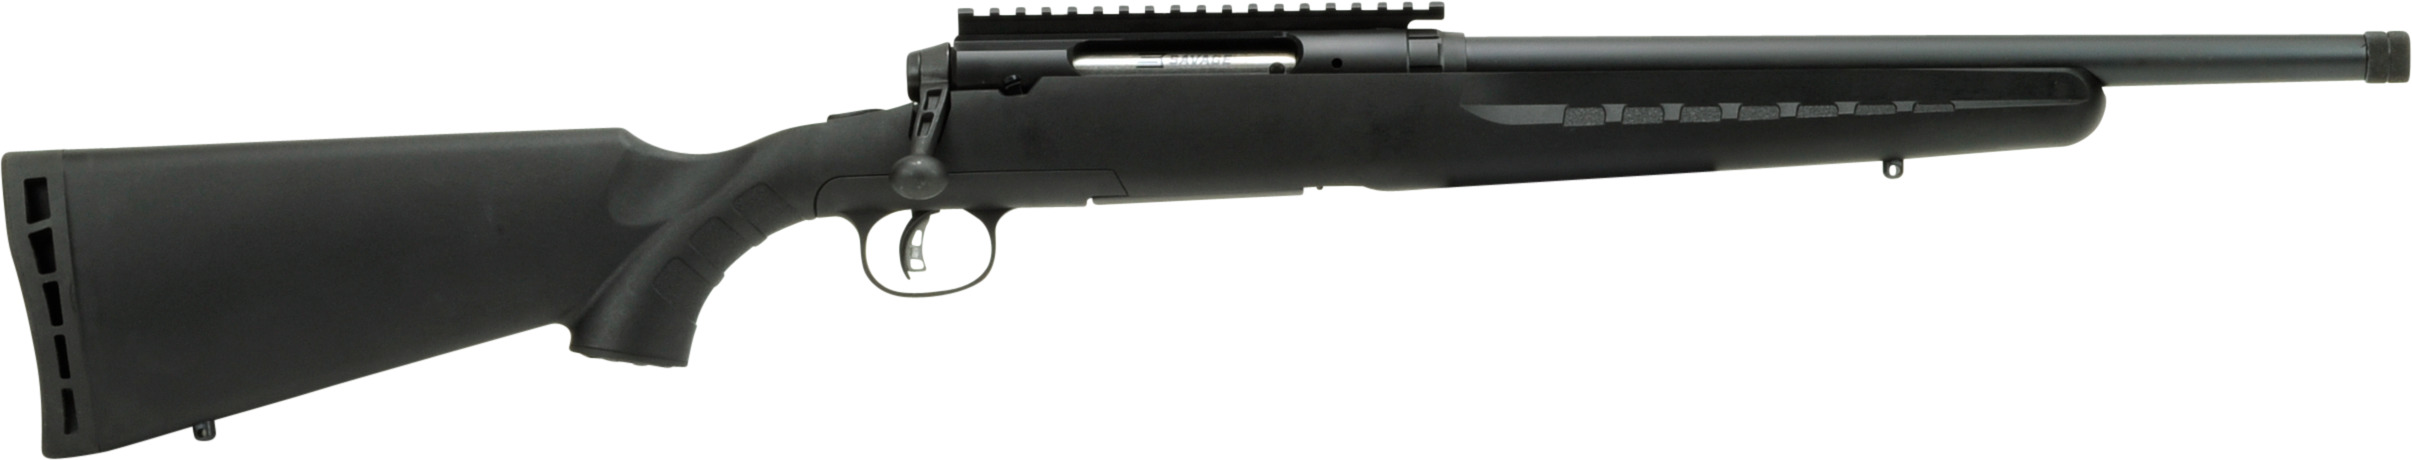 Savage Arms Axis II BLK 300 AAC Blackout